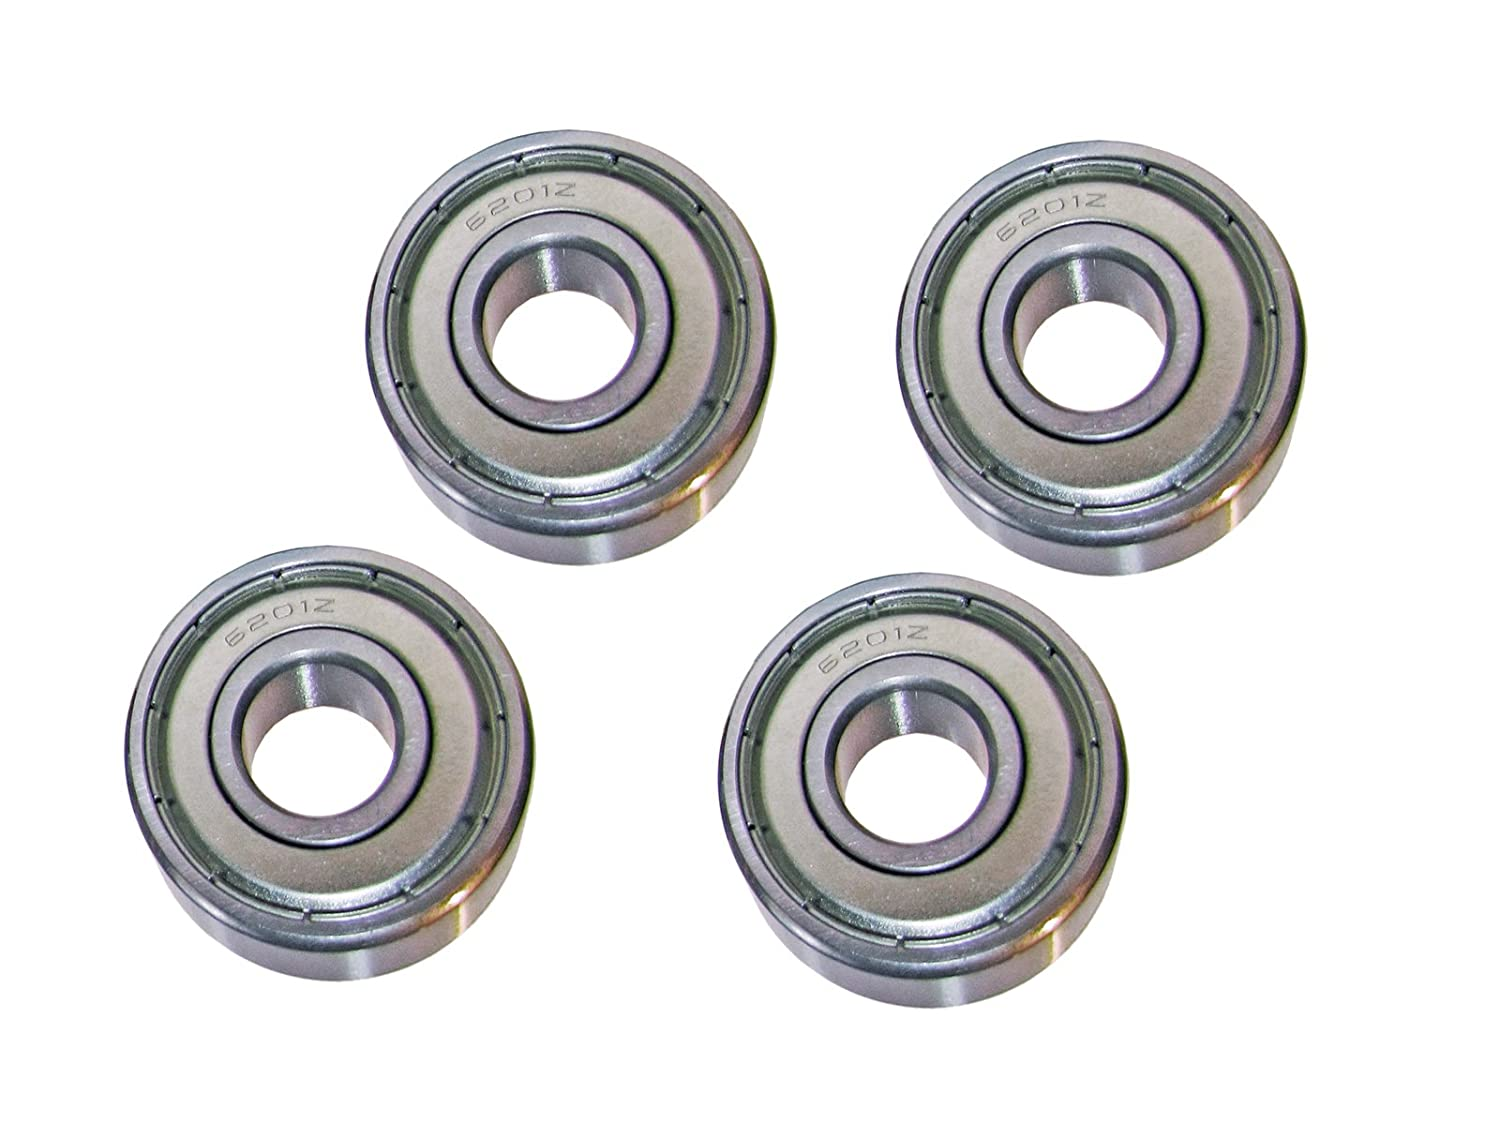 6201-2RS Ball Bearing Dual Sided Rubber Sealed Deep Groove 12x32x10 4PCS